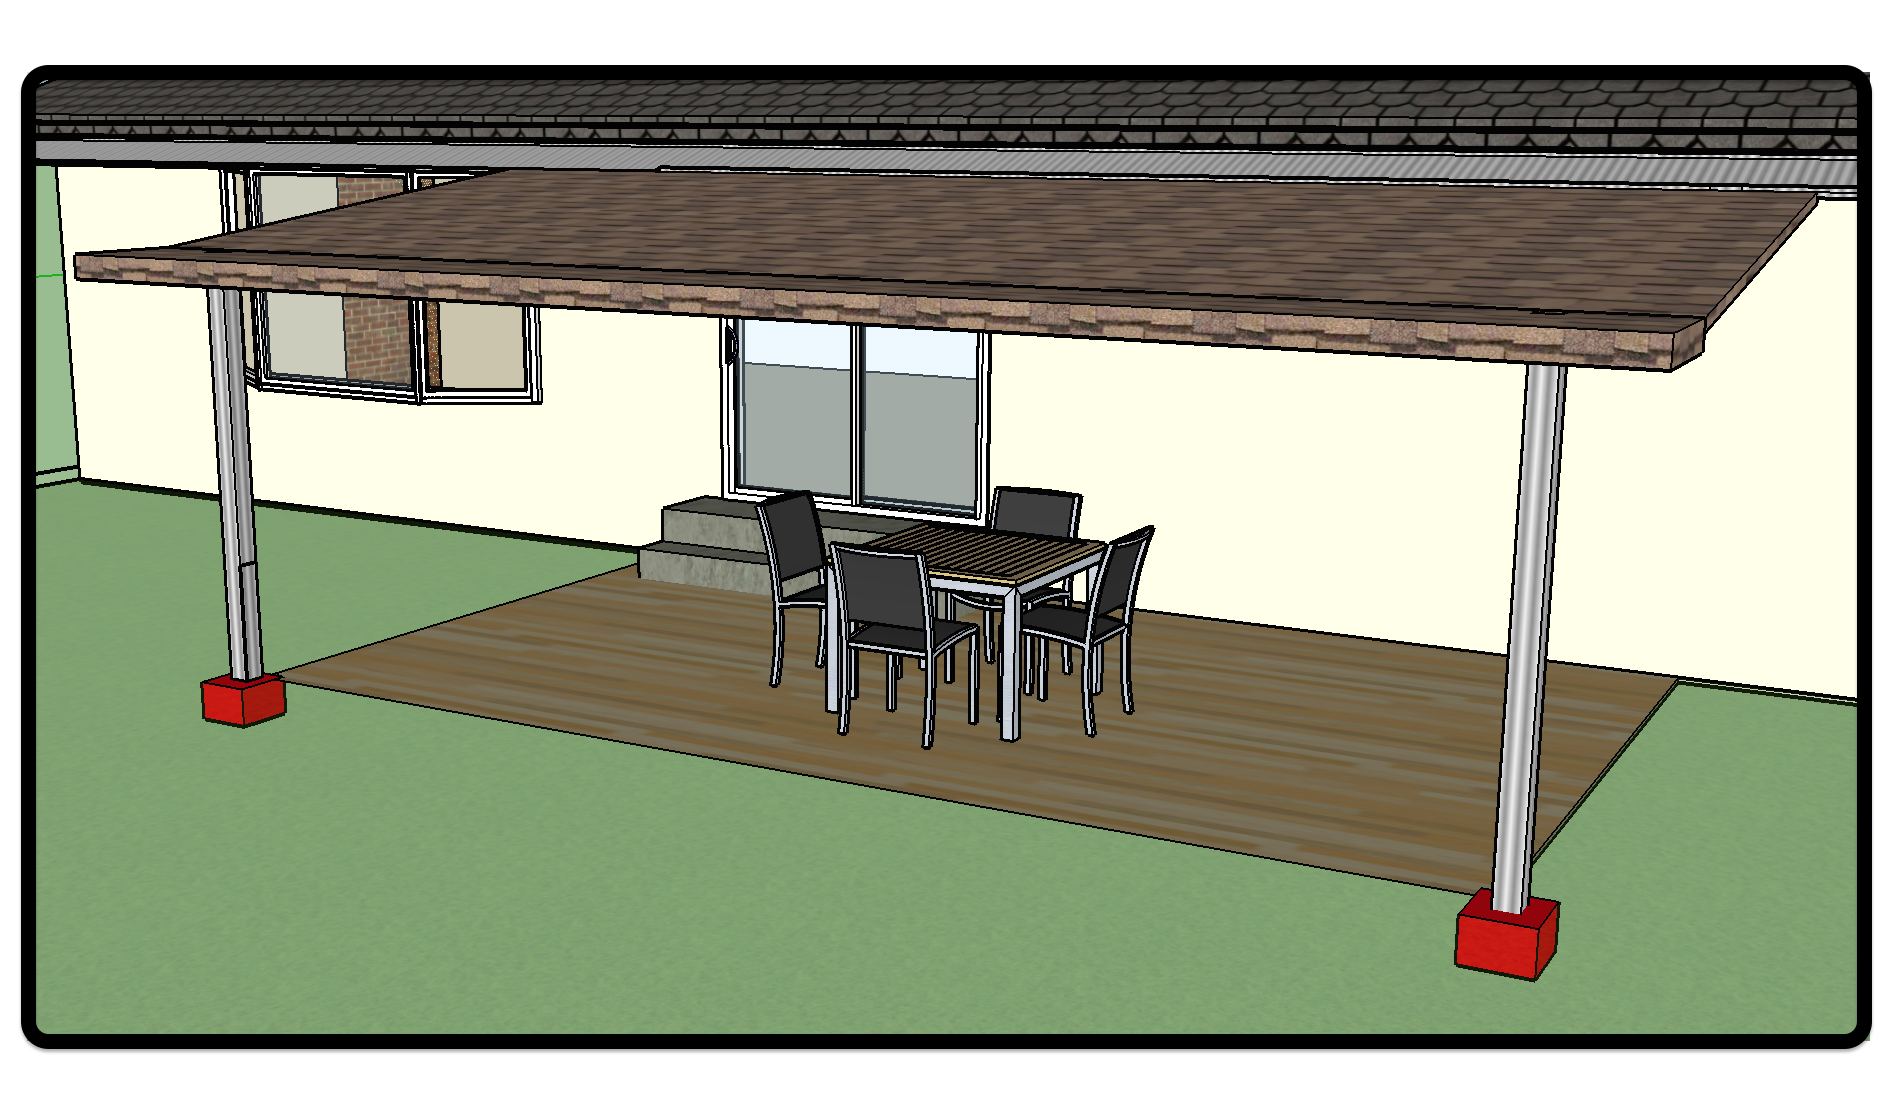 canopy and footing illustration